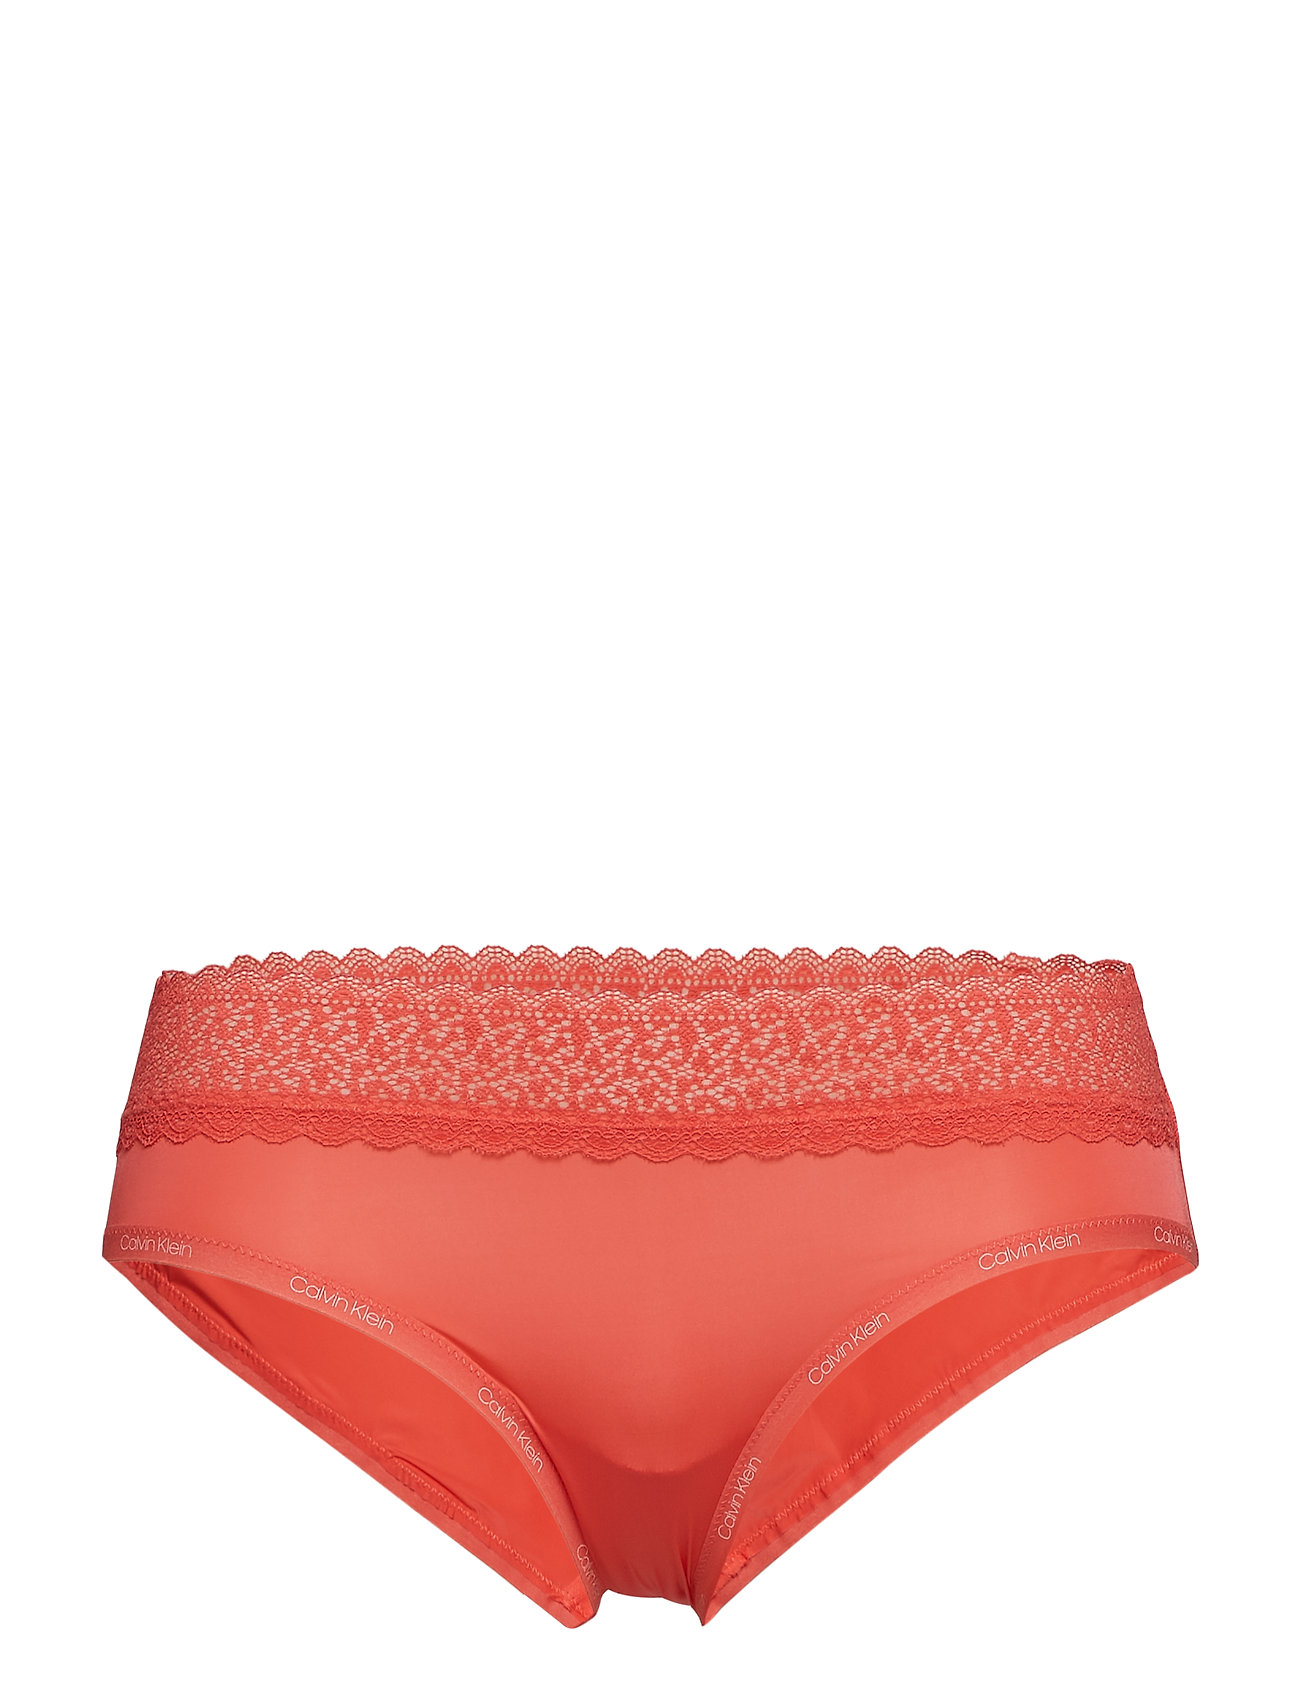 Calvin Klein HIPSTER - FIRE LILY